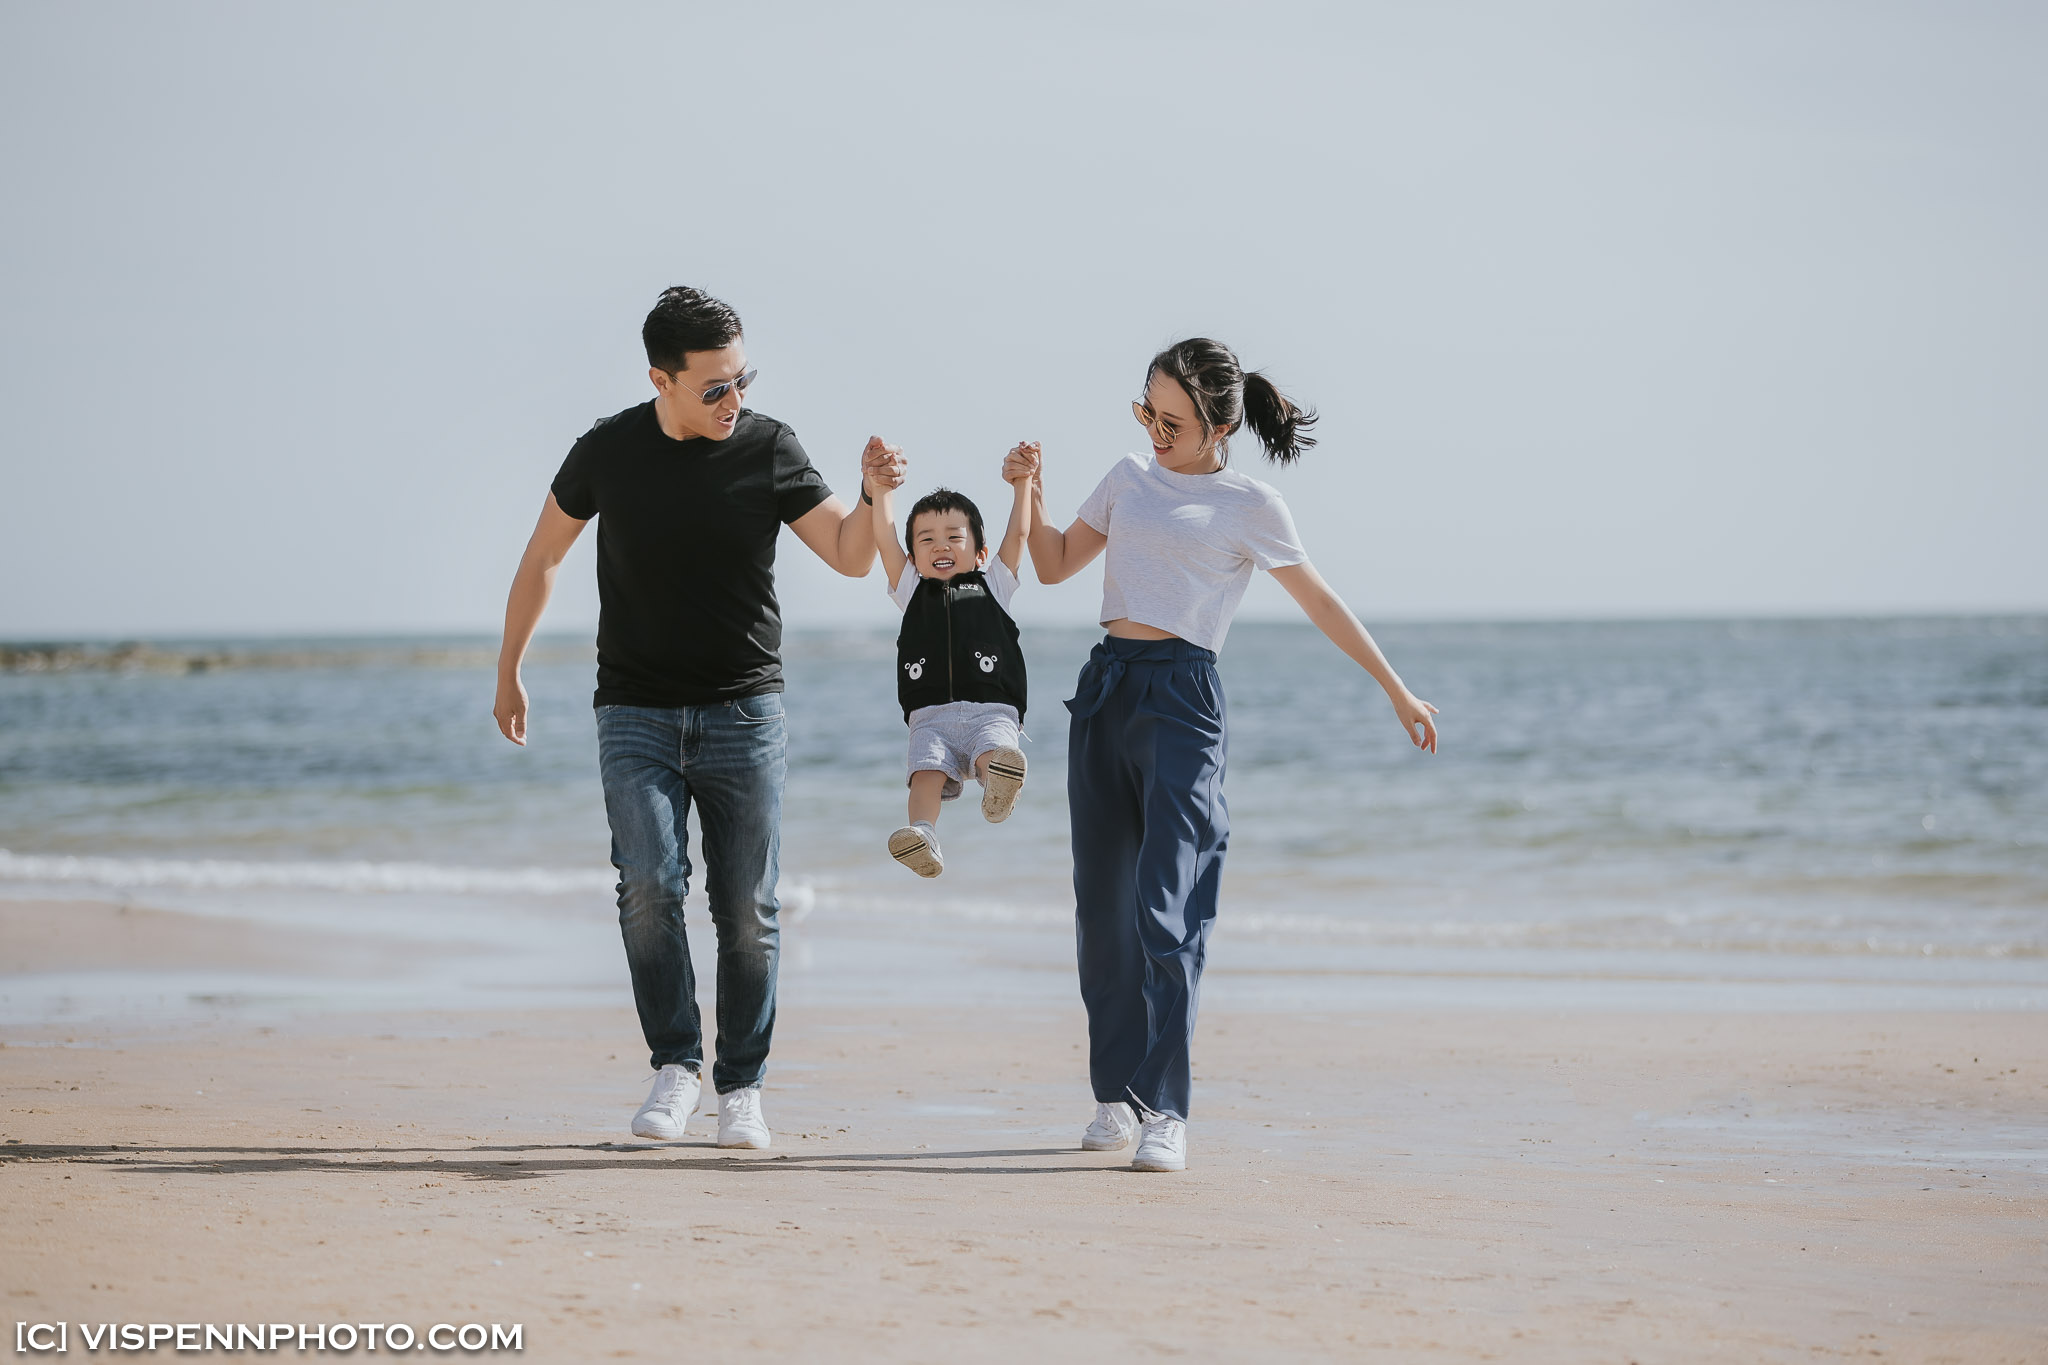 Melbourne Newborn Baby Family Photo BaoBao VISPENN 墨尔本 儿童 宝宝 百天照 满月照 孕妇照 全家福 KIDS MayZhang 1267 VISPENN